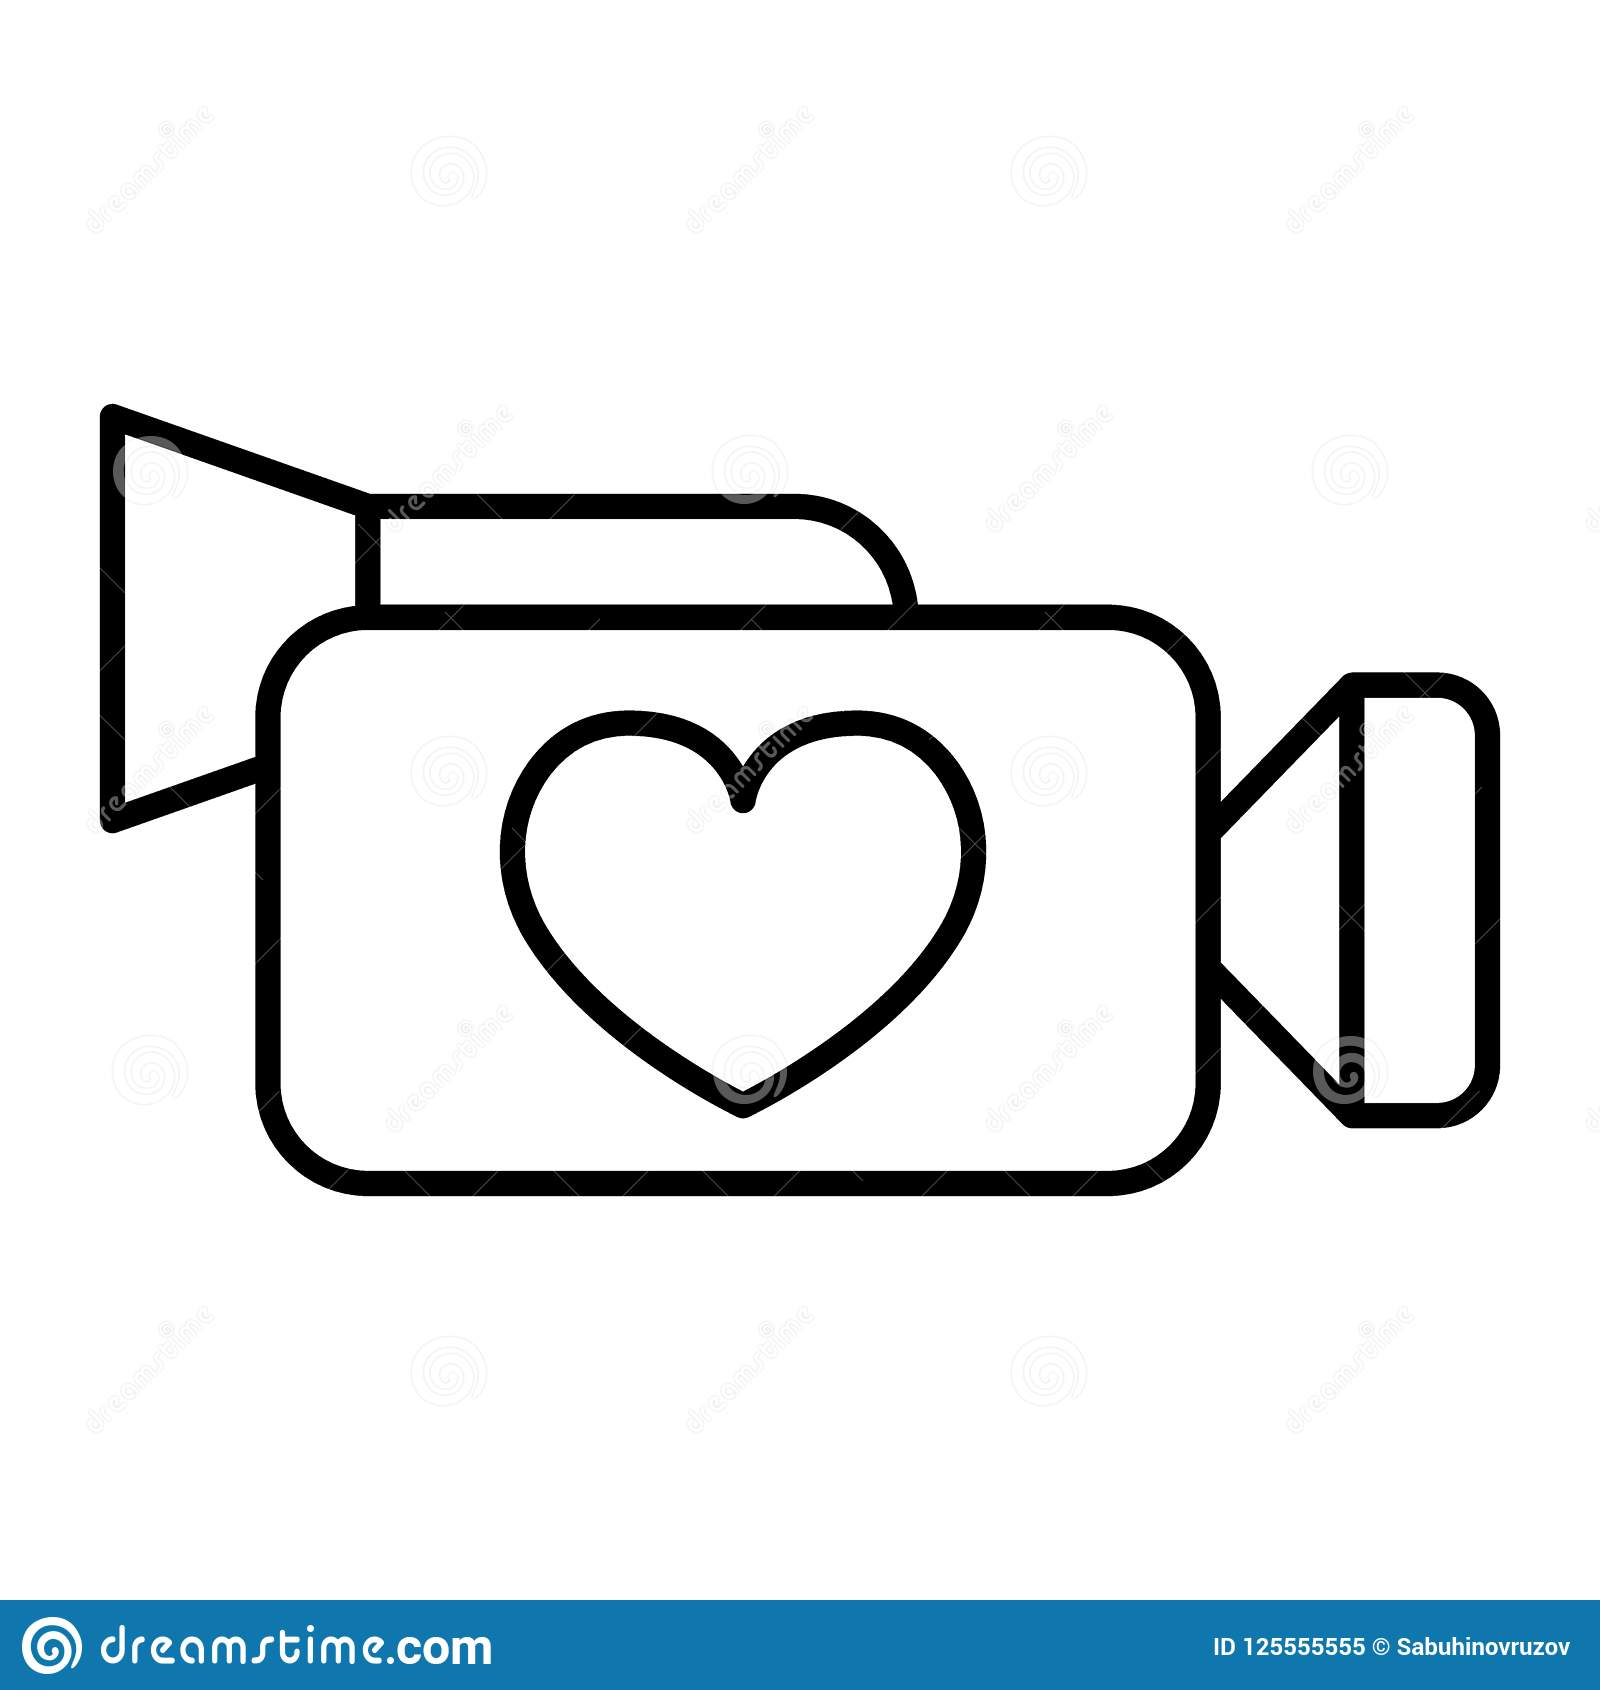 Camera Thin Line Icon Video Camera With Heart Vector Illustration